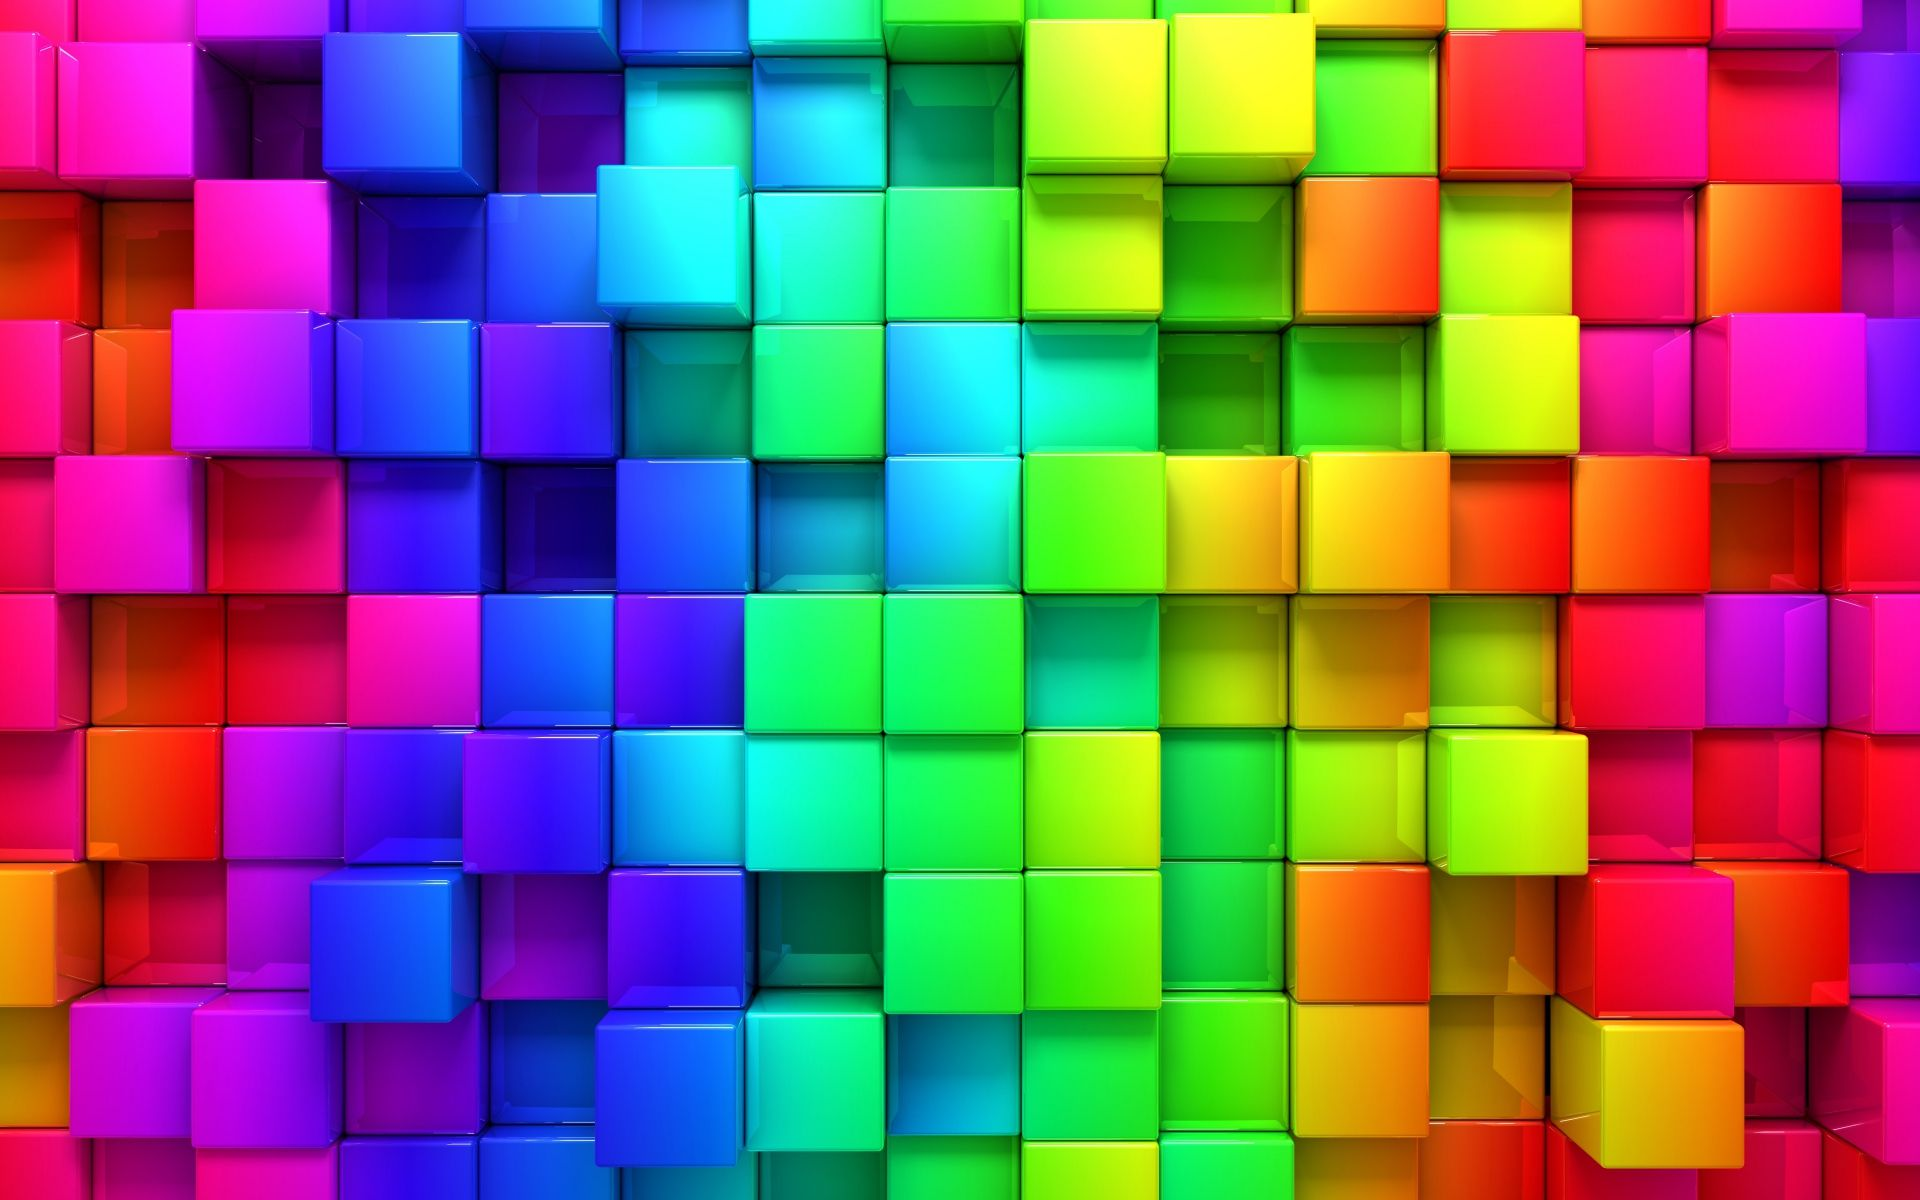 Colorful Box Wallpaper Background Hd